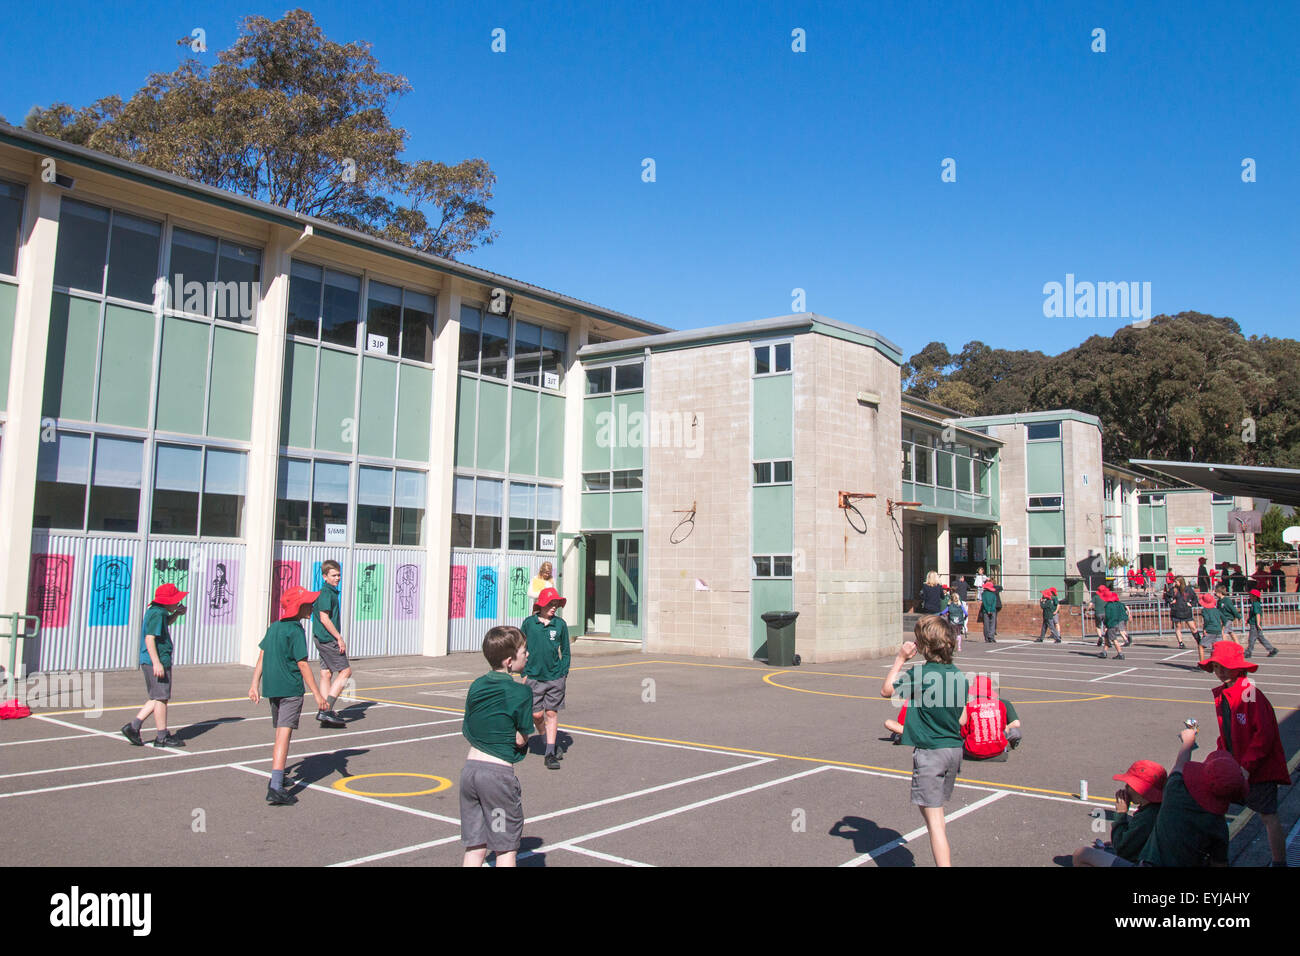 School Children Playing Games In Their Primary School Stock Photo Royalty Free Image 85840663